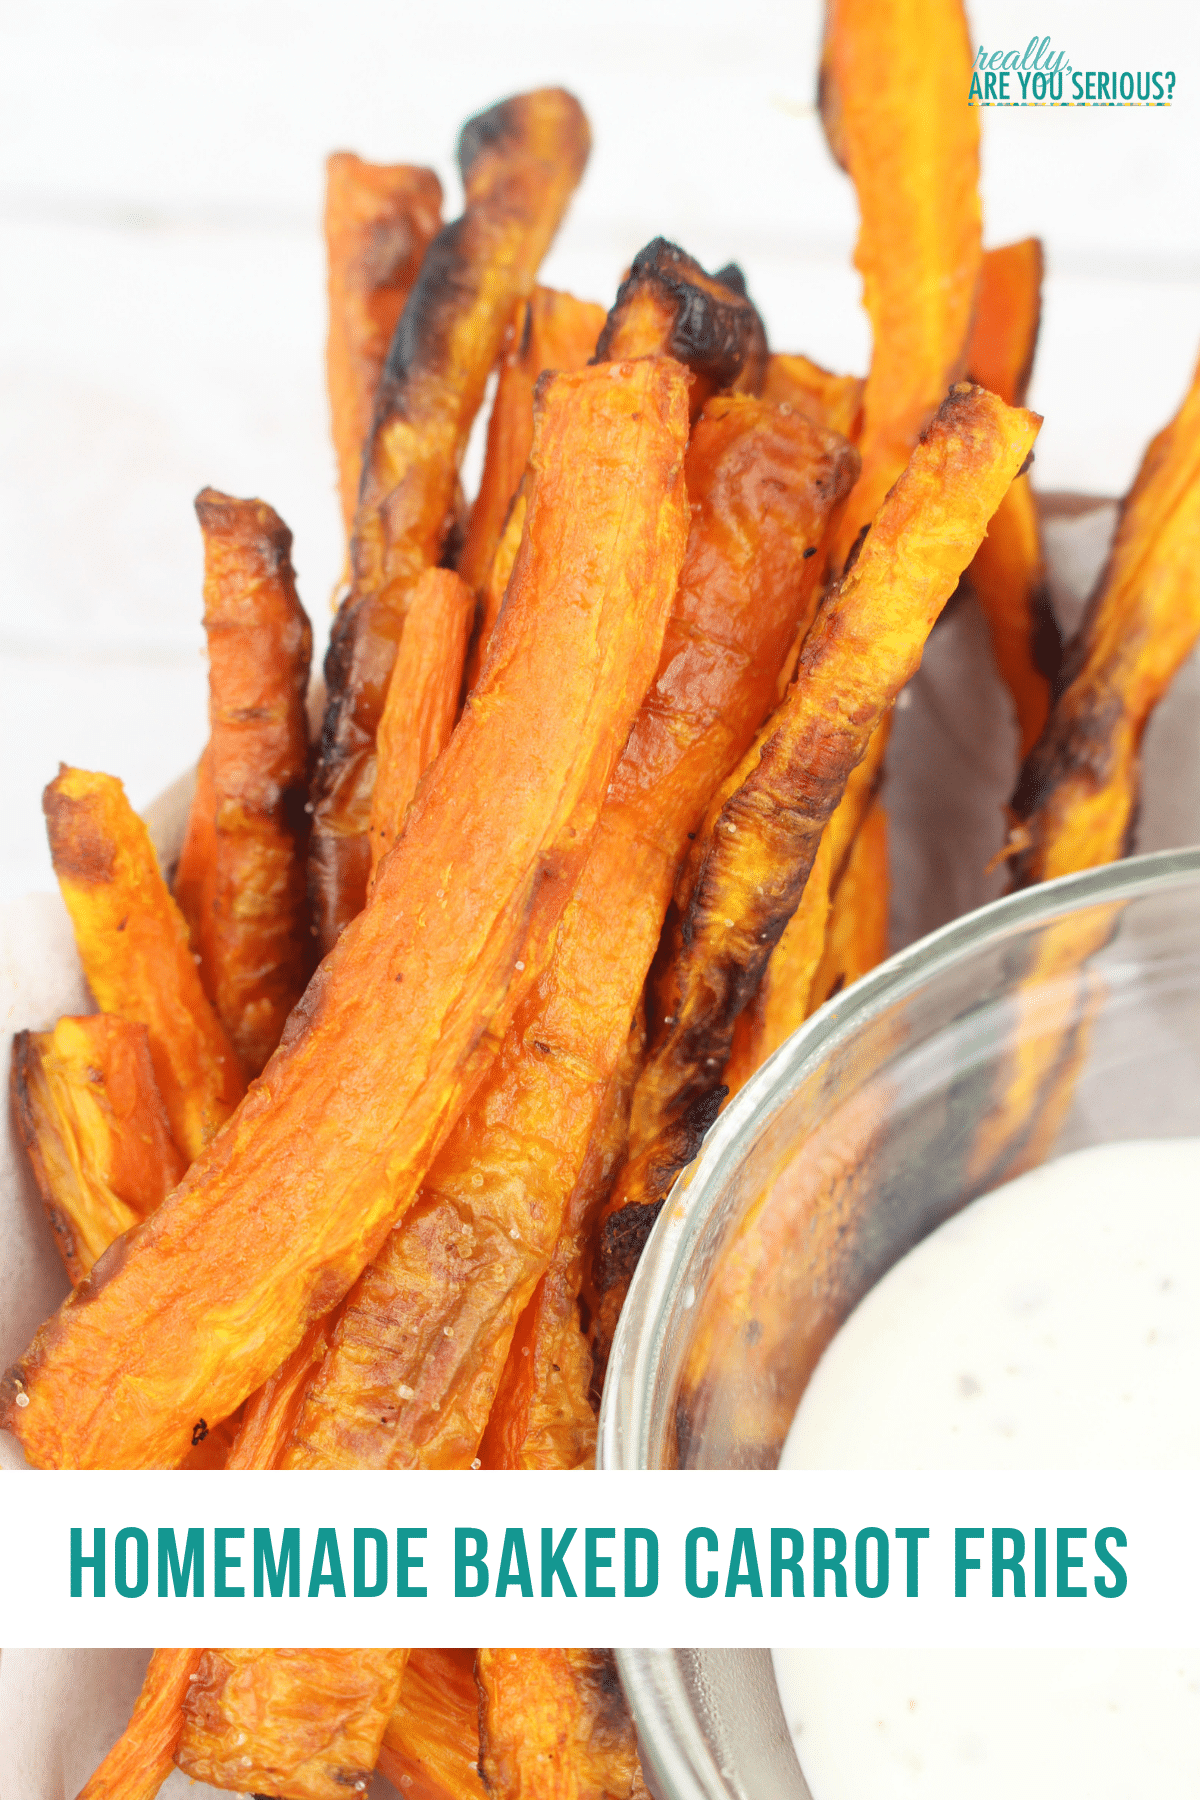 Homemade baked carrot fries